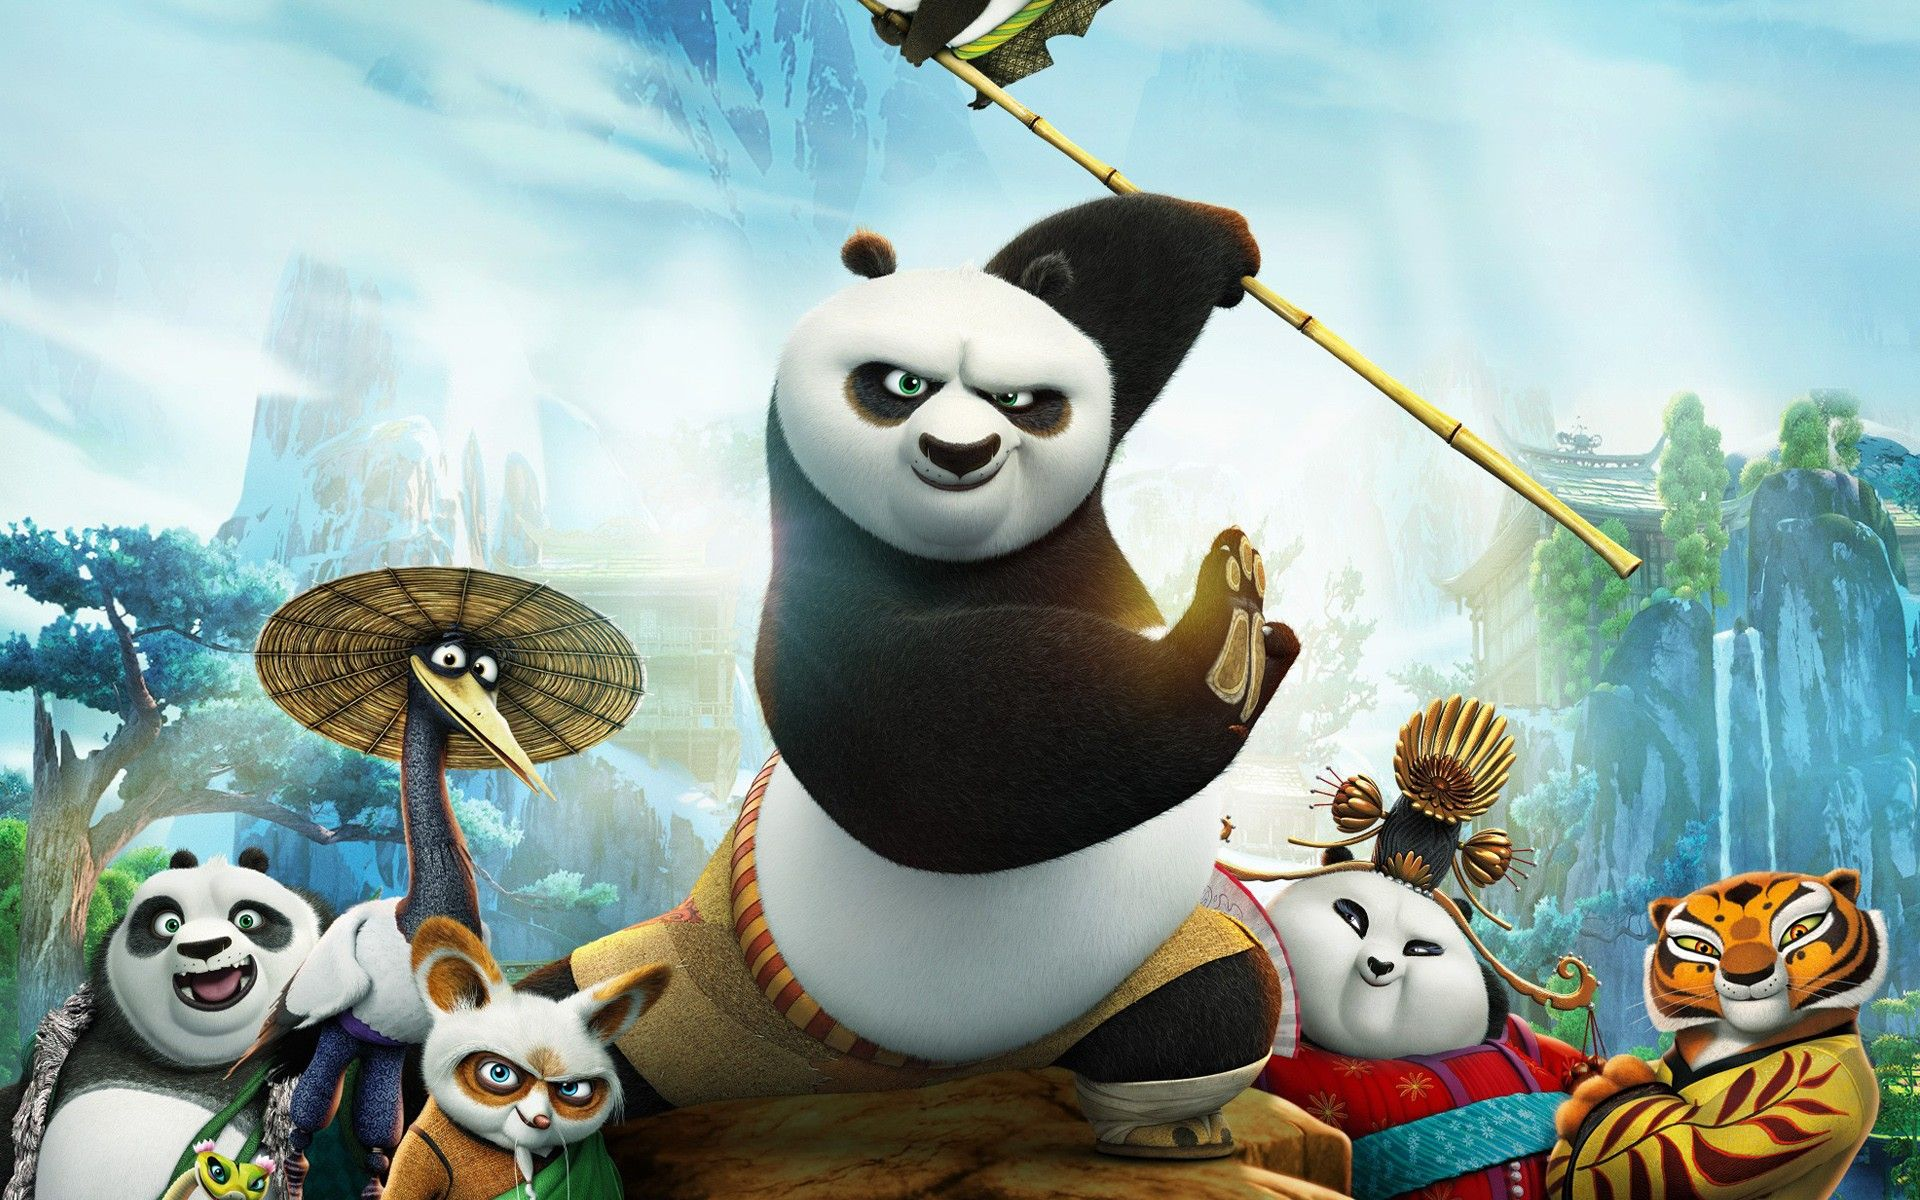 Kung Fu Panda Hd Wallpapers Backgrounds Wallpaper 1024 768 Kung Fu Panda 3 Wallpapers 39 Wallpapers Ador Kung Fu Panda Kung Fu Panda 3 Panda Wallpapers